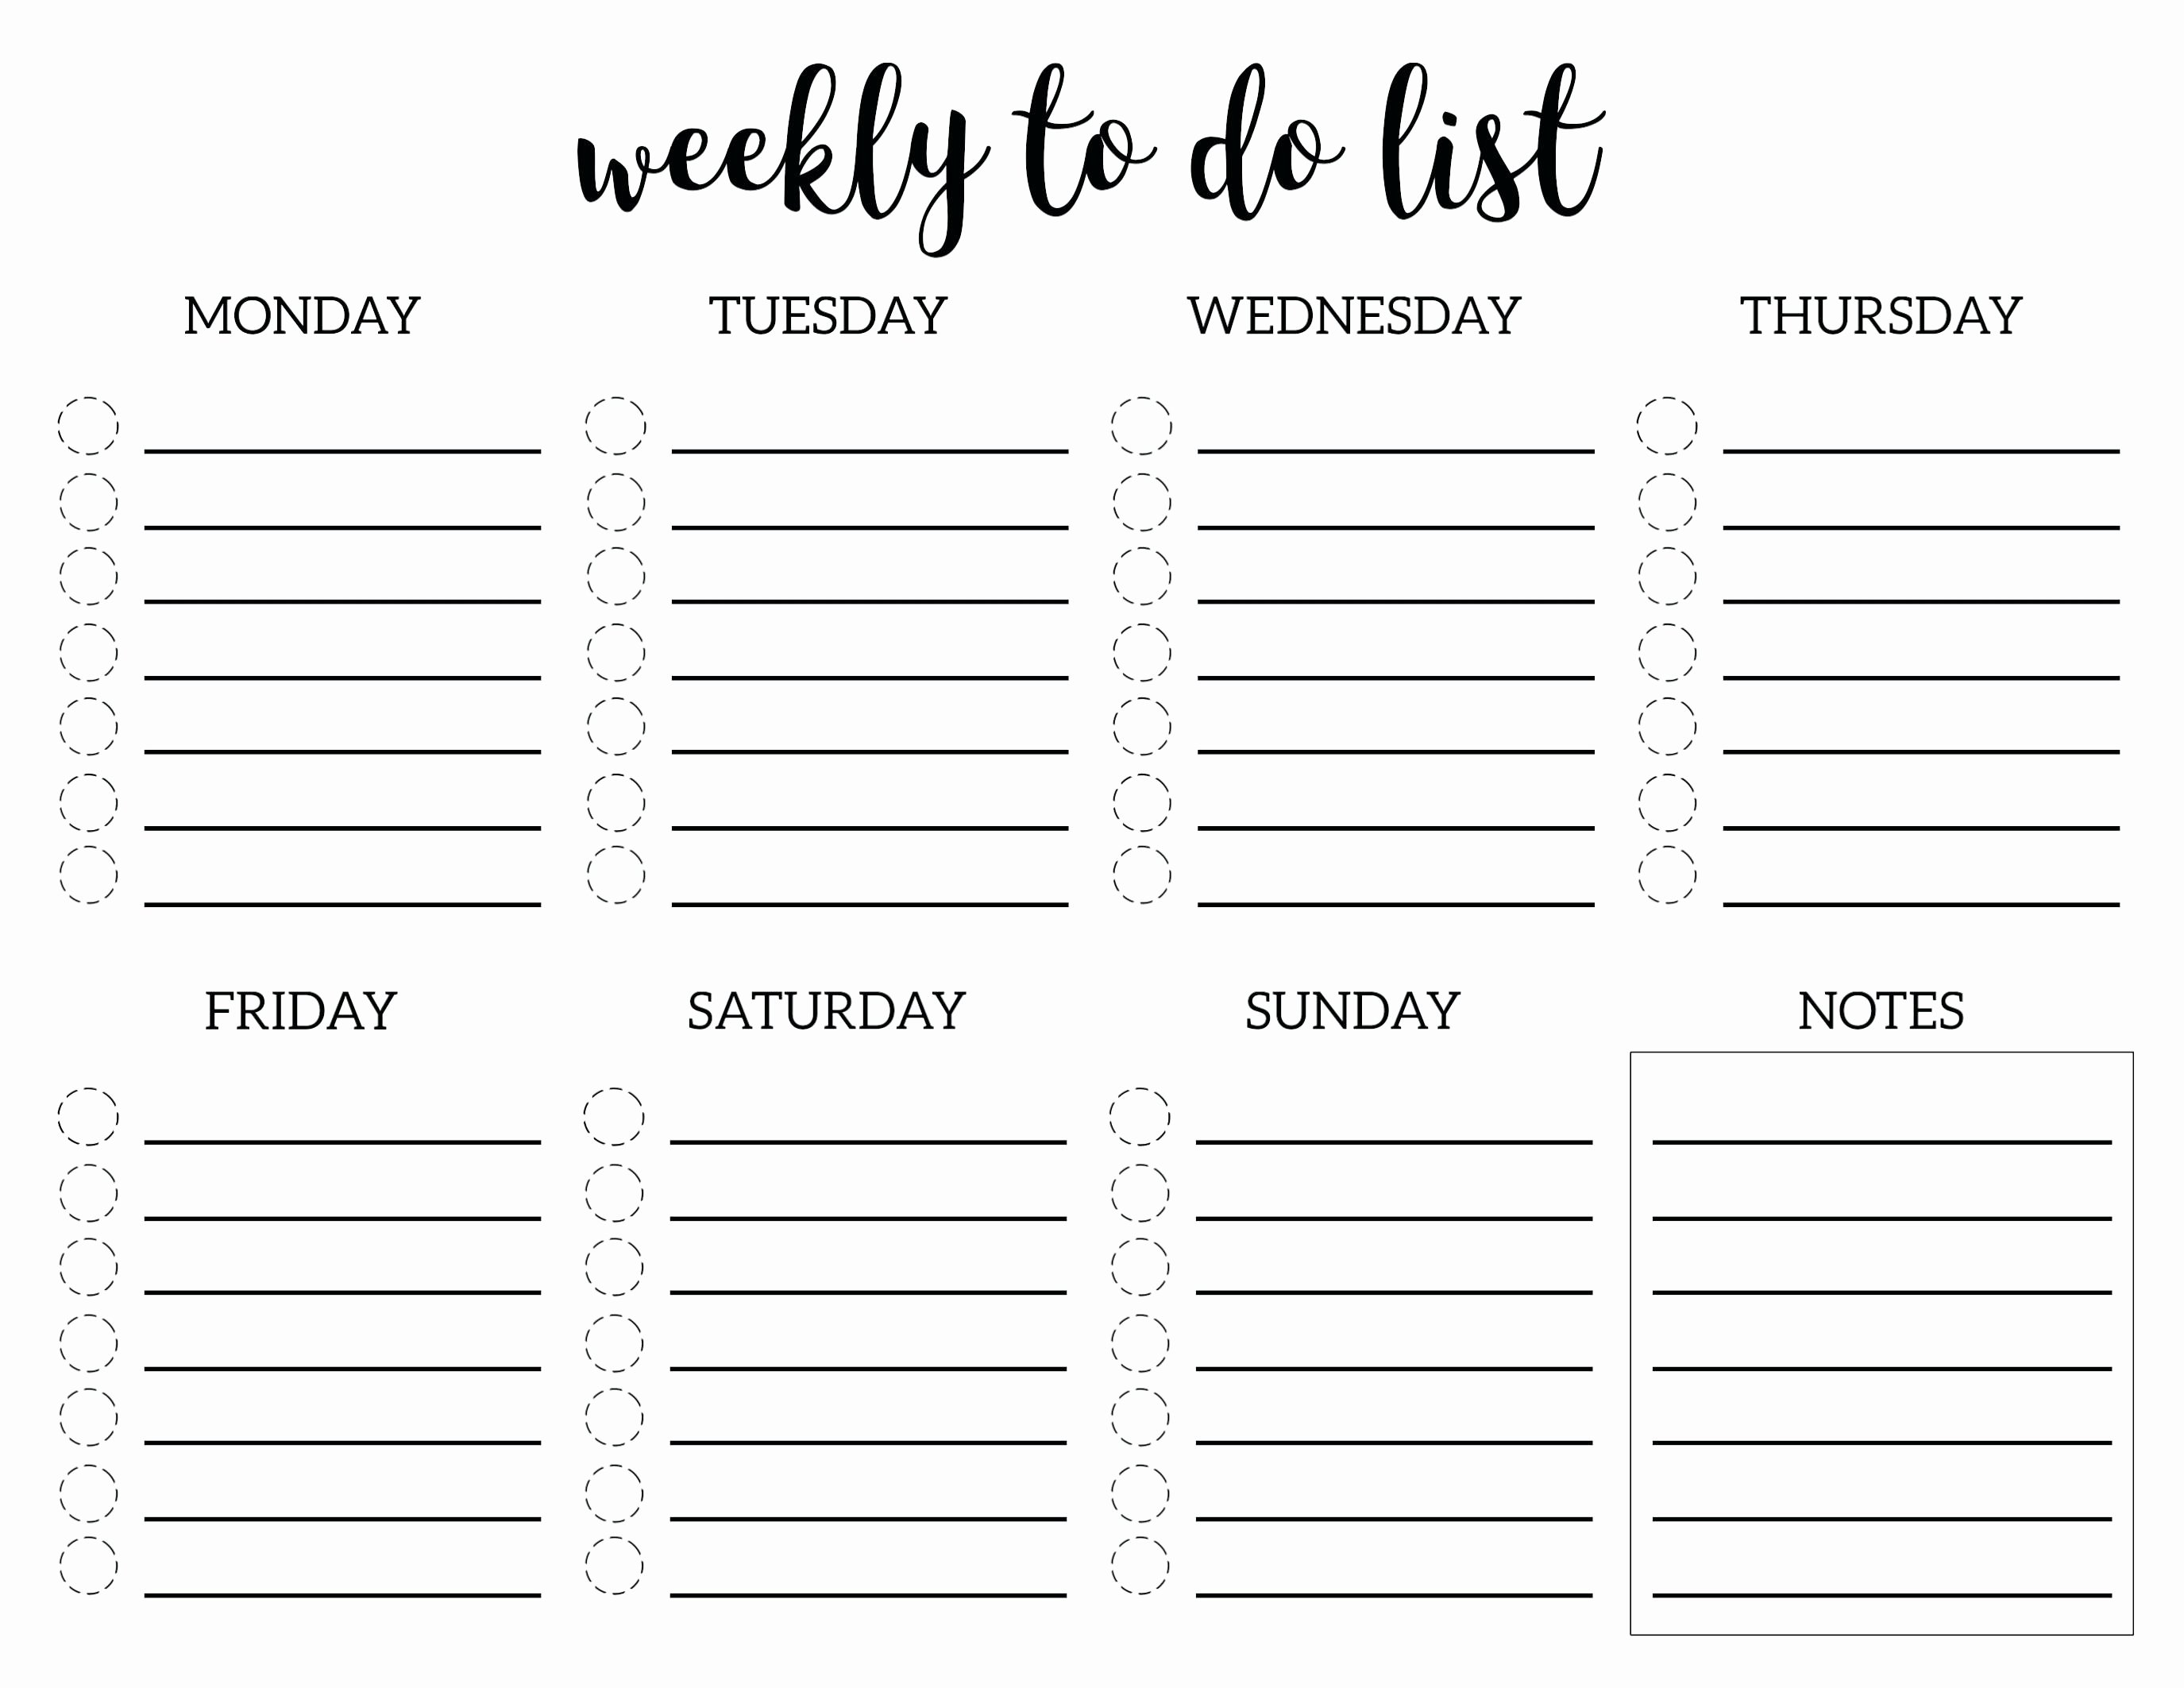 Template Blank Week Template to Do List Checklist Weekly